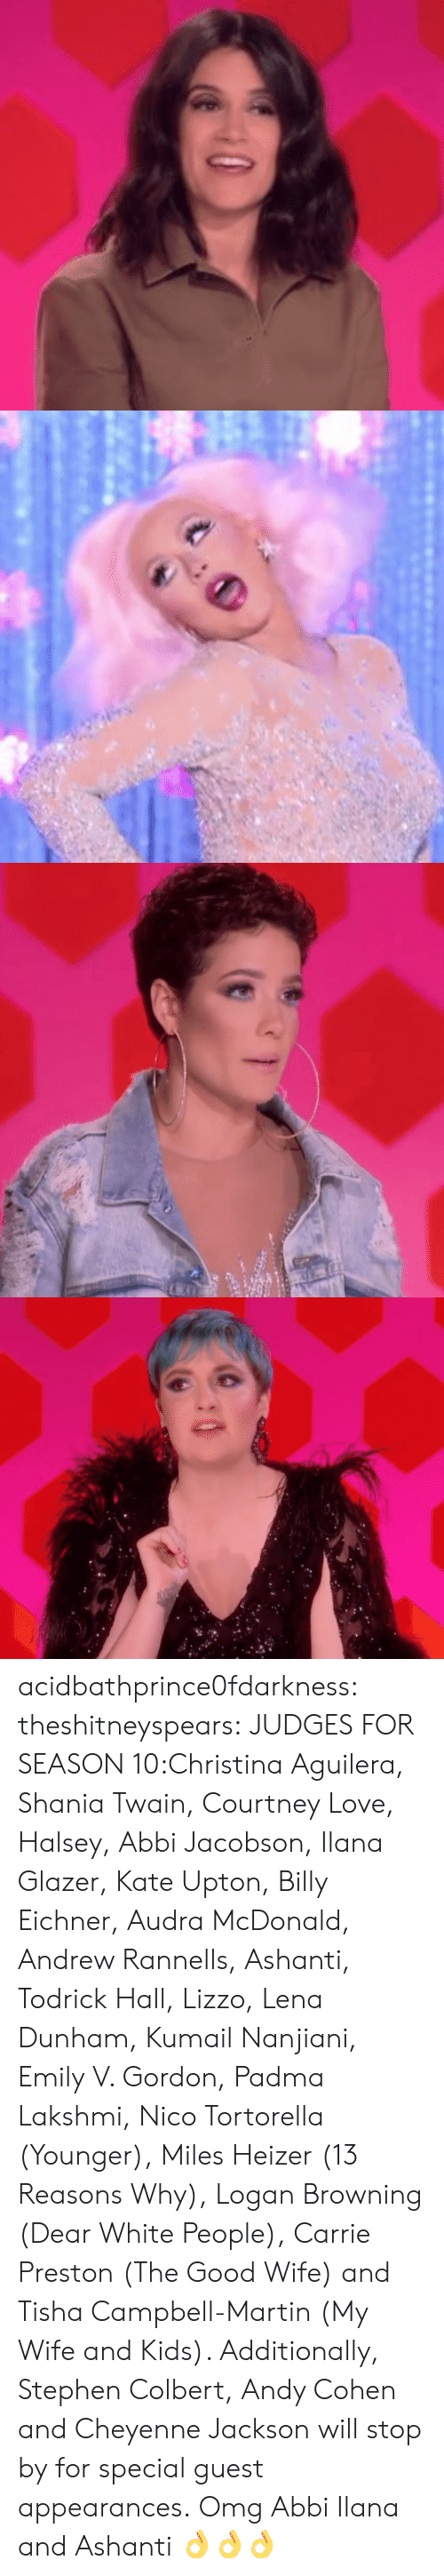 browning: acidbathprince0fdarkness:  theshitneyspears:  JUDGES FOR SEASON 10:Christina Aguilera, Shania Twain, Courtney Love, Halsey, Abbi Jacobson, Ilana Glazer, Kate Upton, Billy Eichner, Audra McDonald, Andrew Rannells, Ashanti, Todrick Hall, Lizzo, Lena Dunham, Kumail Nanjiani, Emily V. Gordon, Padma Lakshmi, Nico Tortorella (Younger), Miles Heizer (13 Reasons Why), Logan Browning (Dear White People), Carrie Preston (The Good Wife) and Tisha Campbell-Martin (My Wife and Kids). Additionally, Stephen Colbert, Andy Cohen and Cheyenne Jackson will stop by for special guest appearances.  Omg Abbi  Ilana and Ashanti 👌👌👌